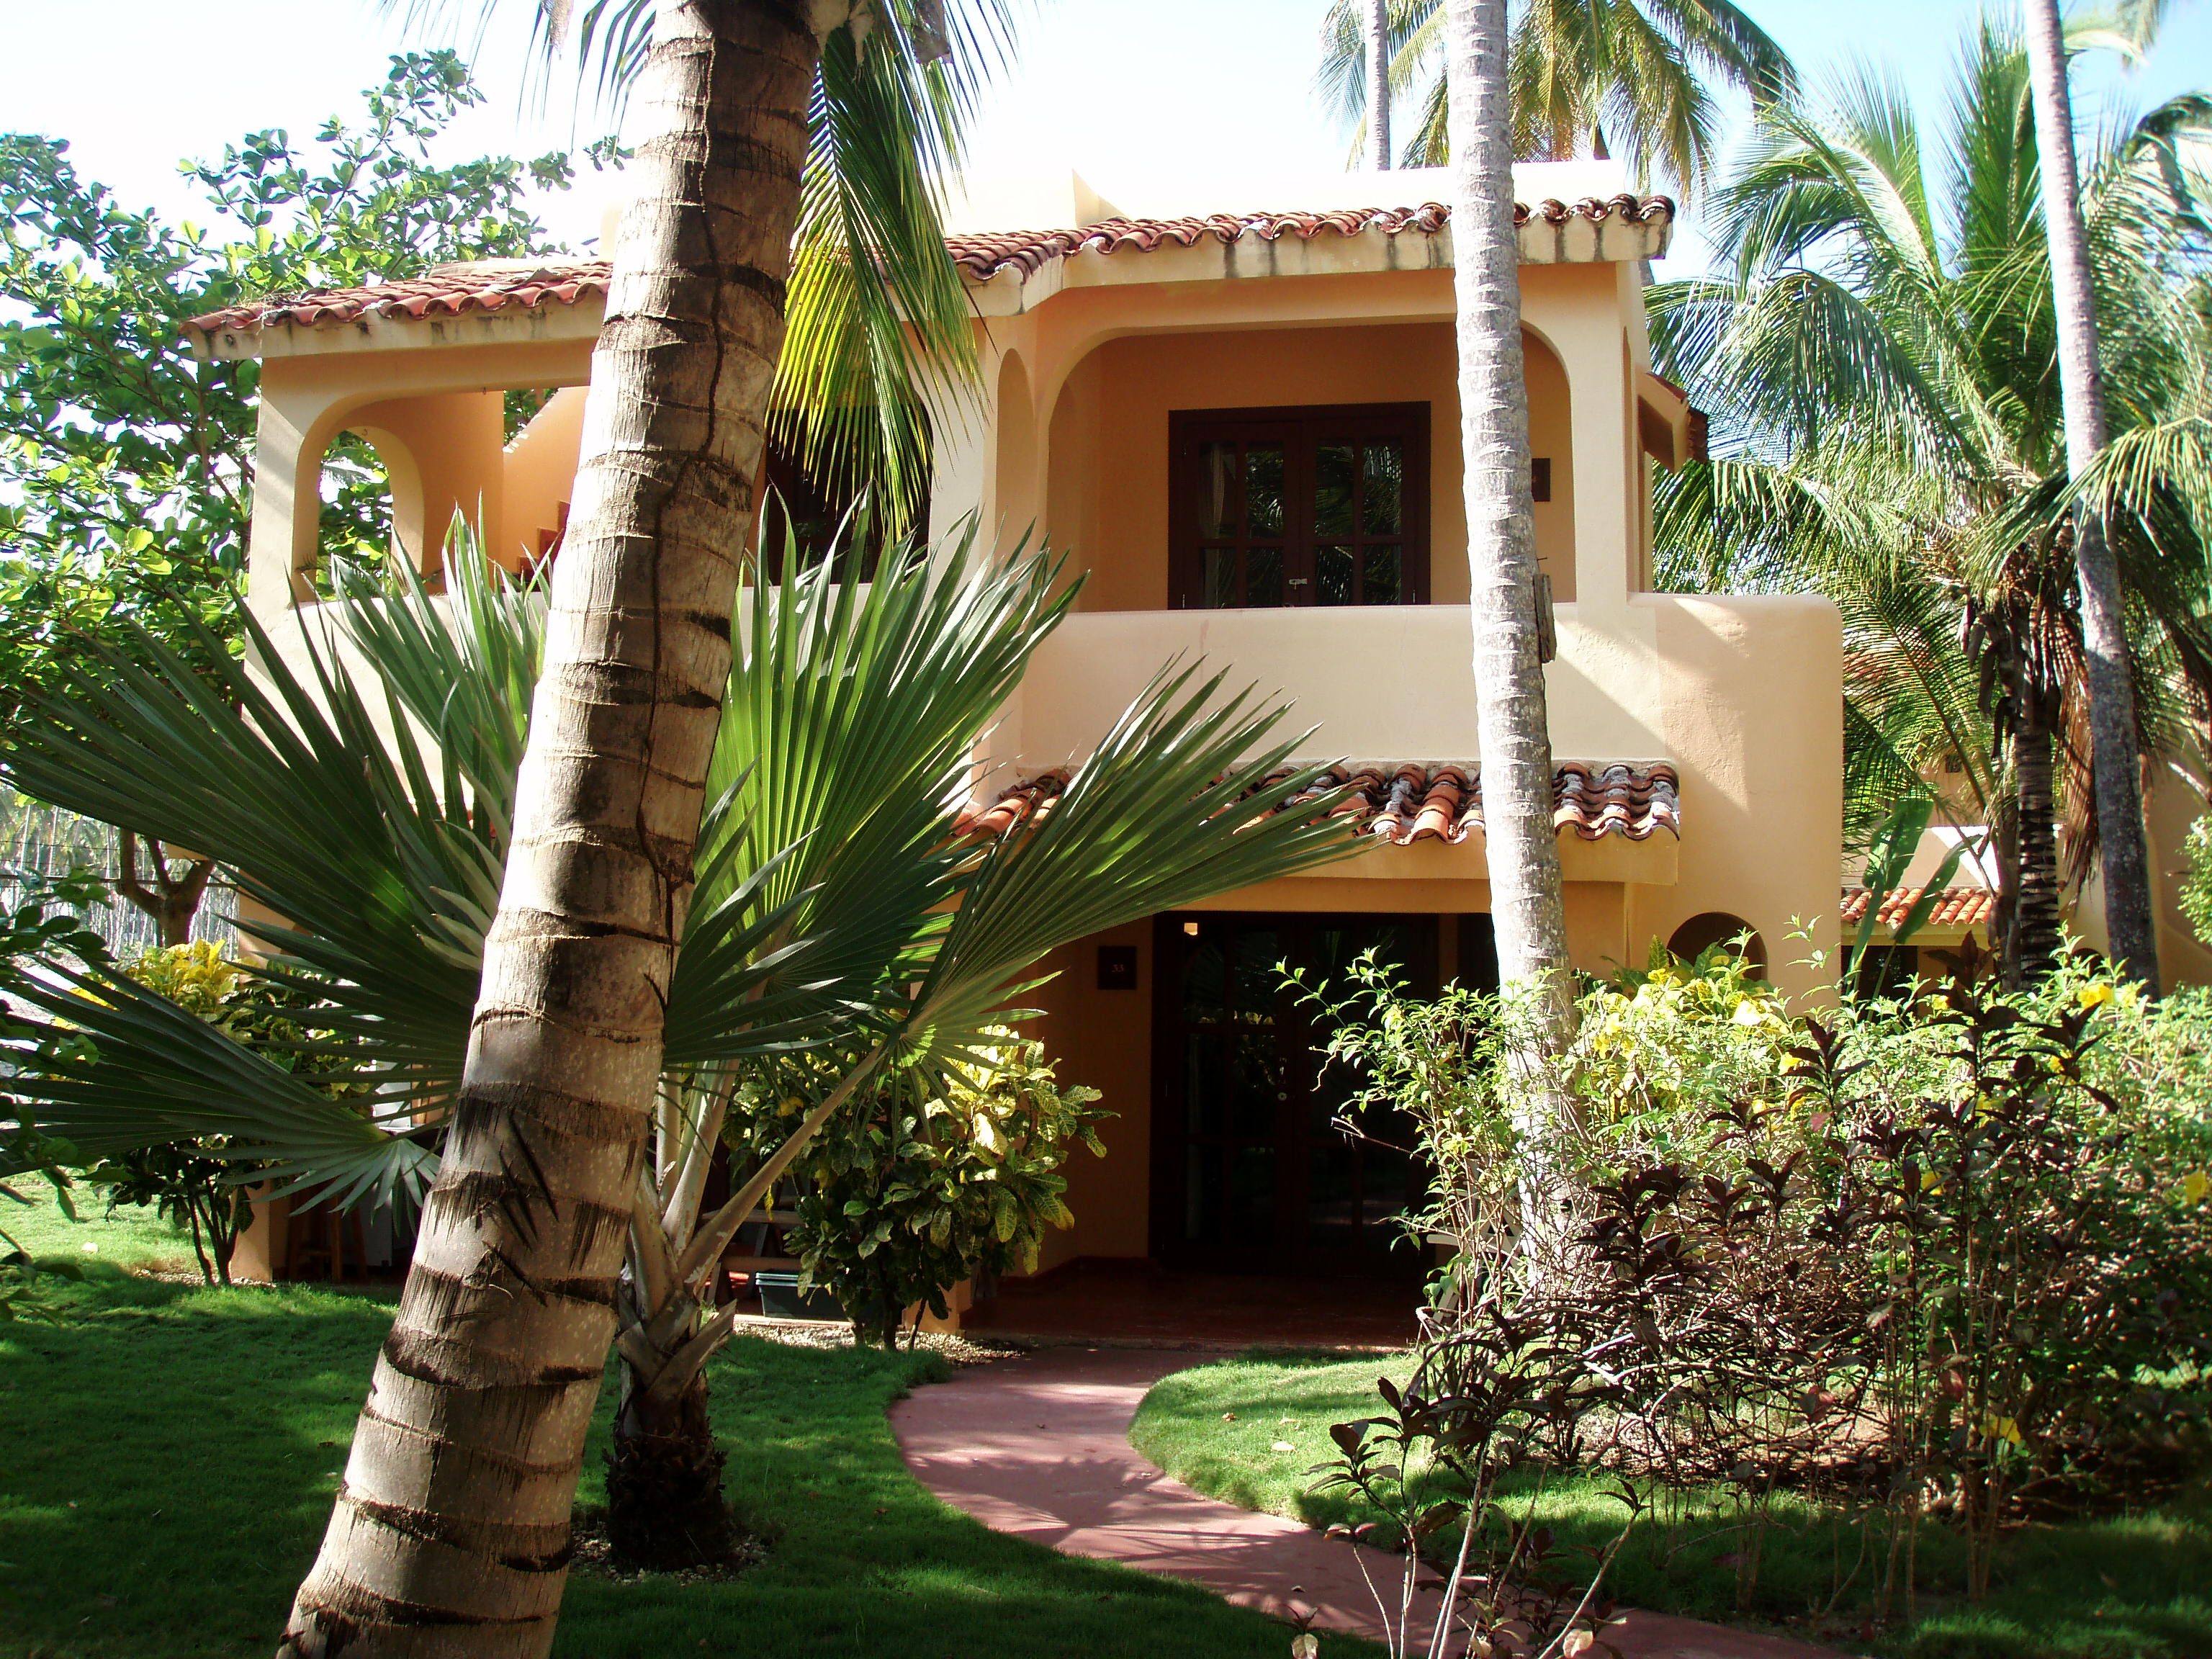 Los Corales Village - Villas 33 & 34 - External view